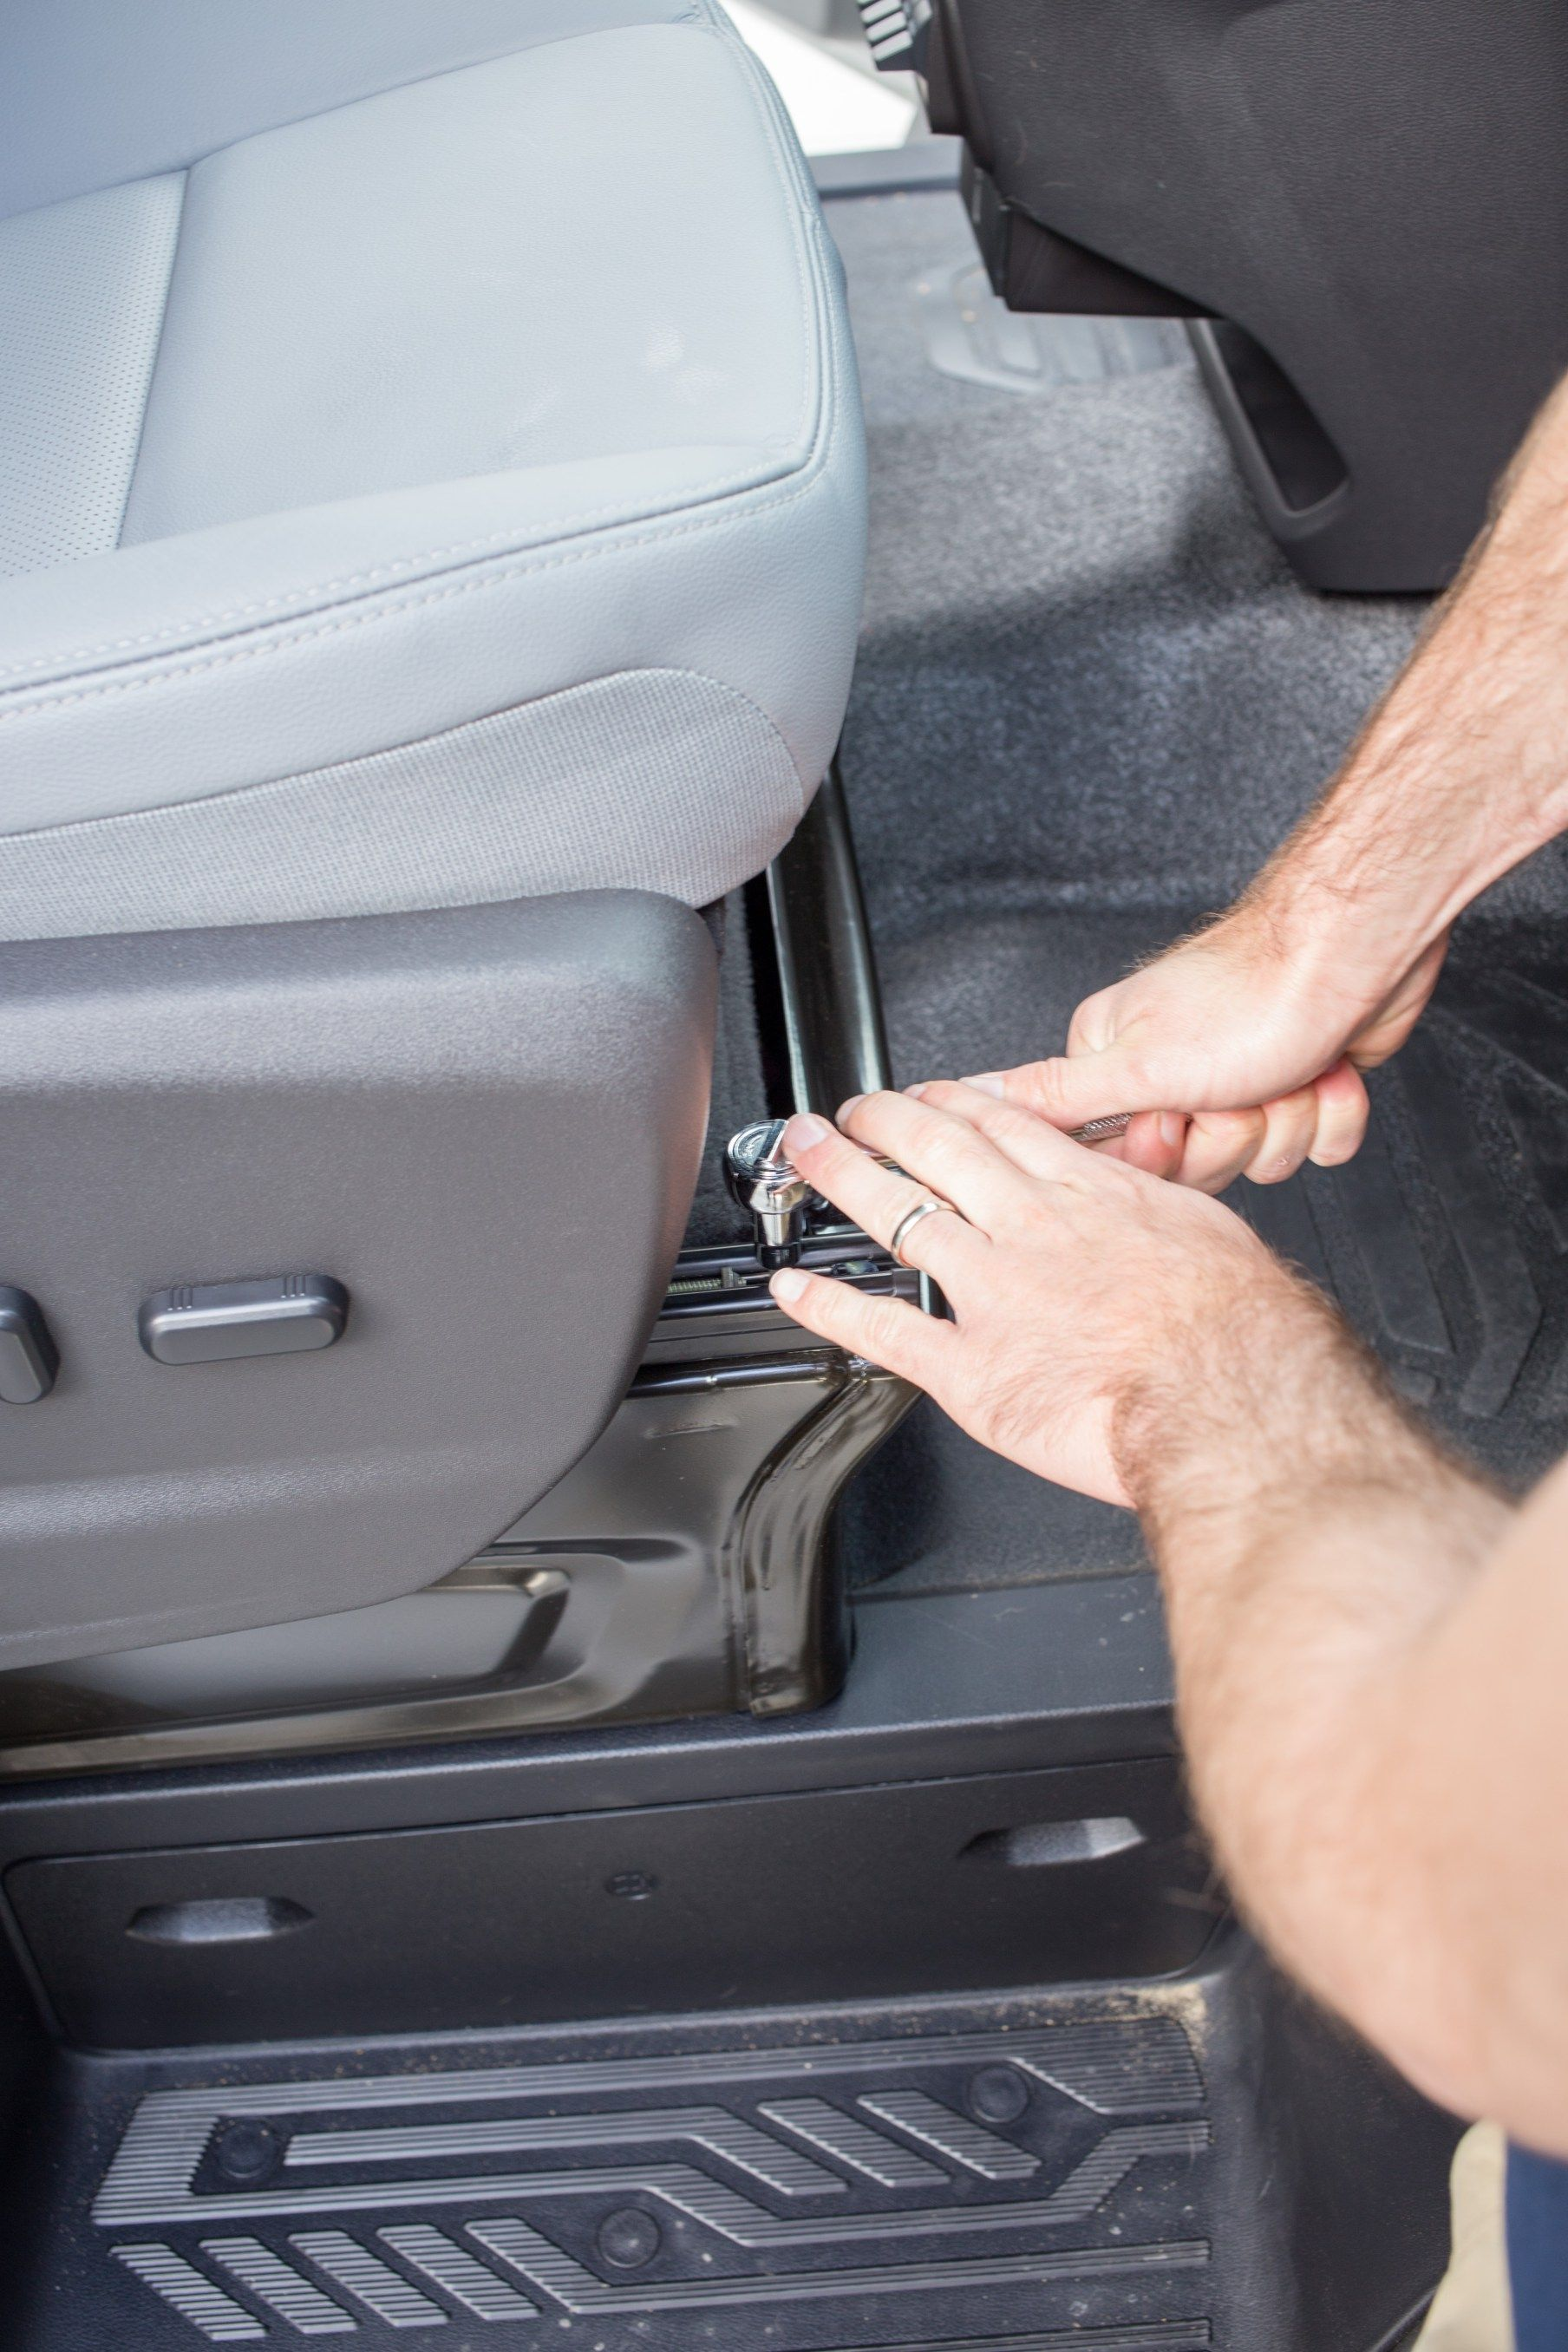 How To Install A Swivel Seat Adapter